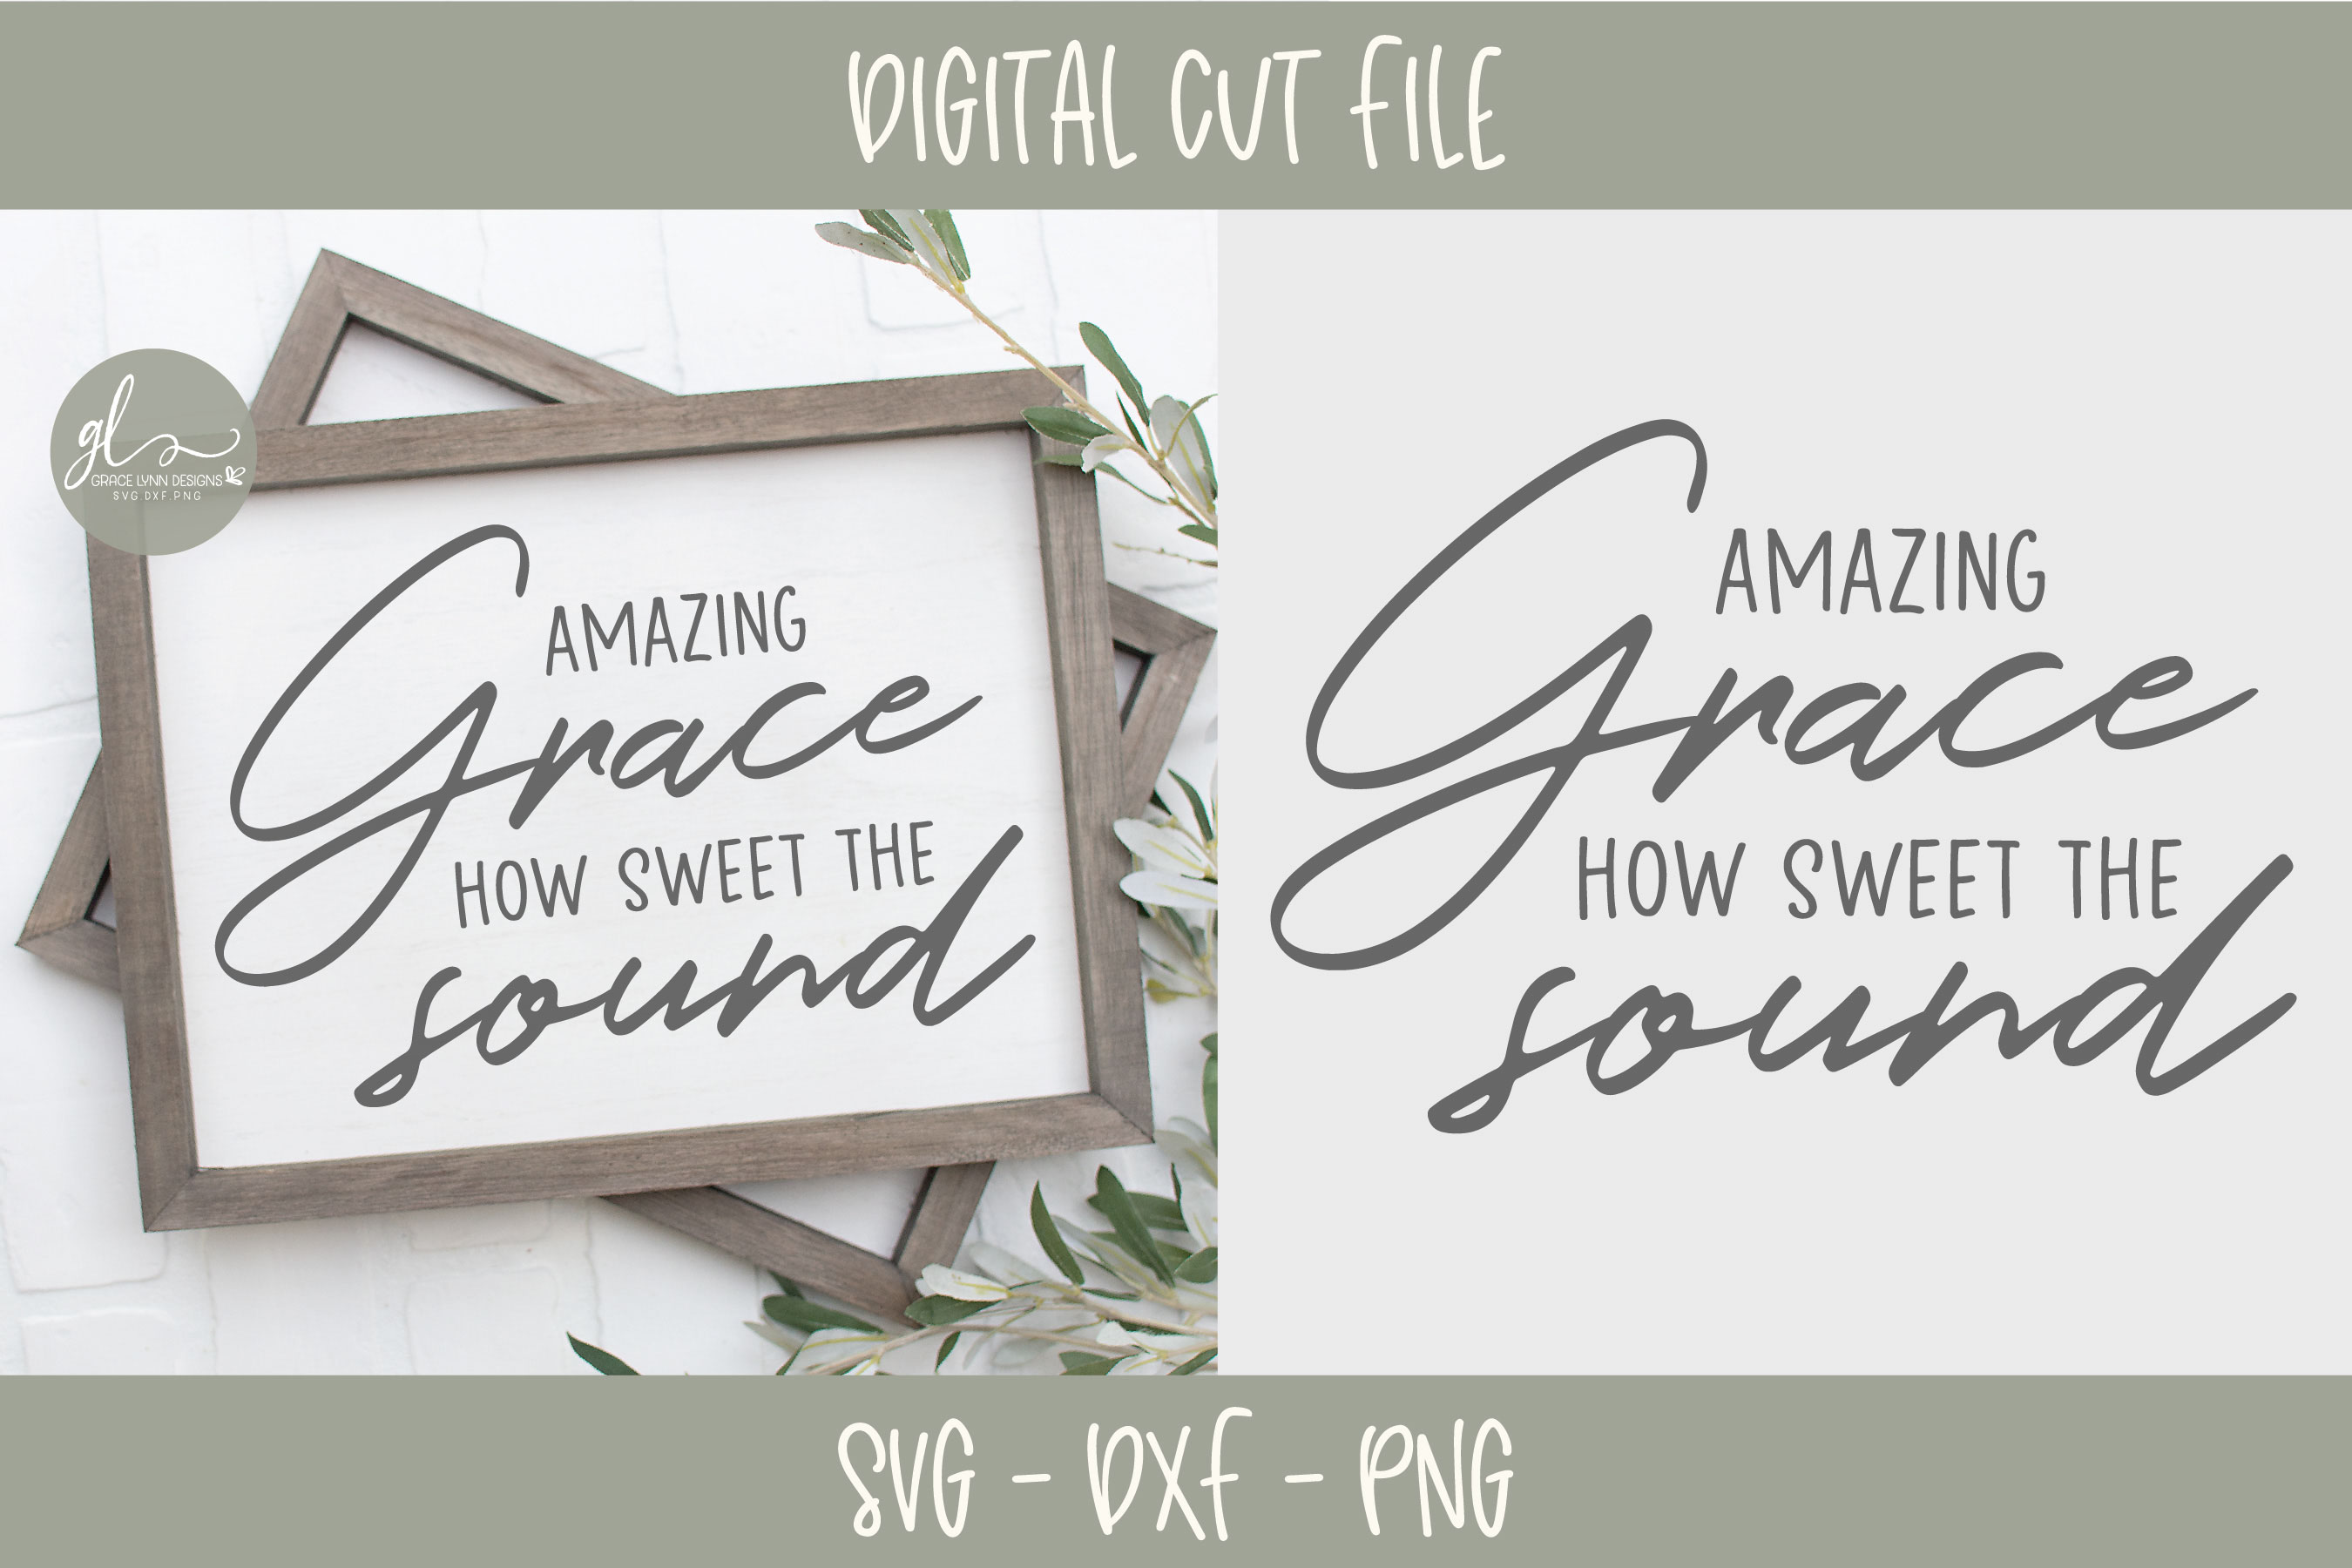 Amazing Grace How Sweet The Sound - SVG Cut File example image 1